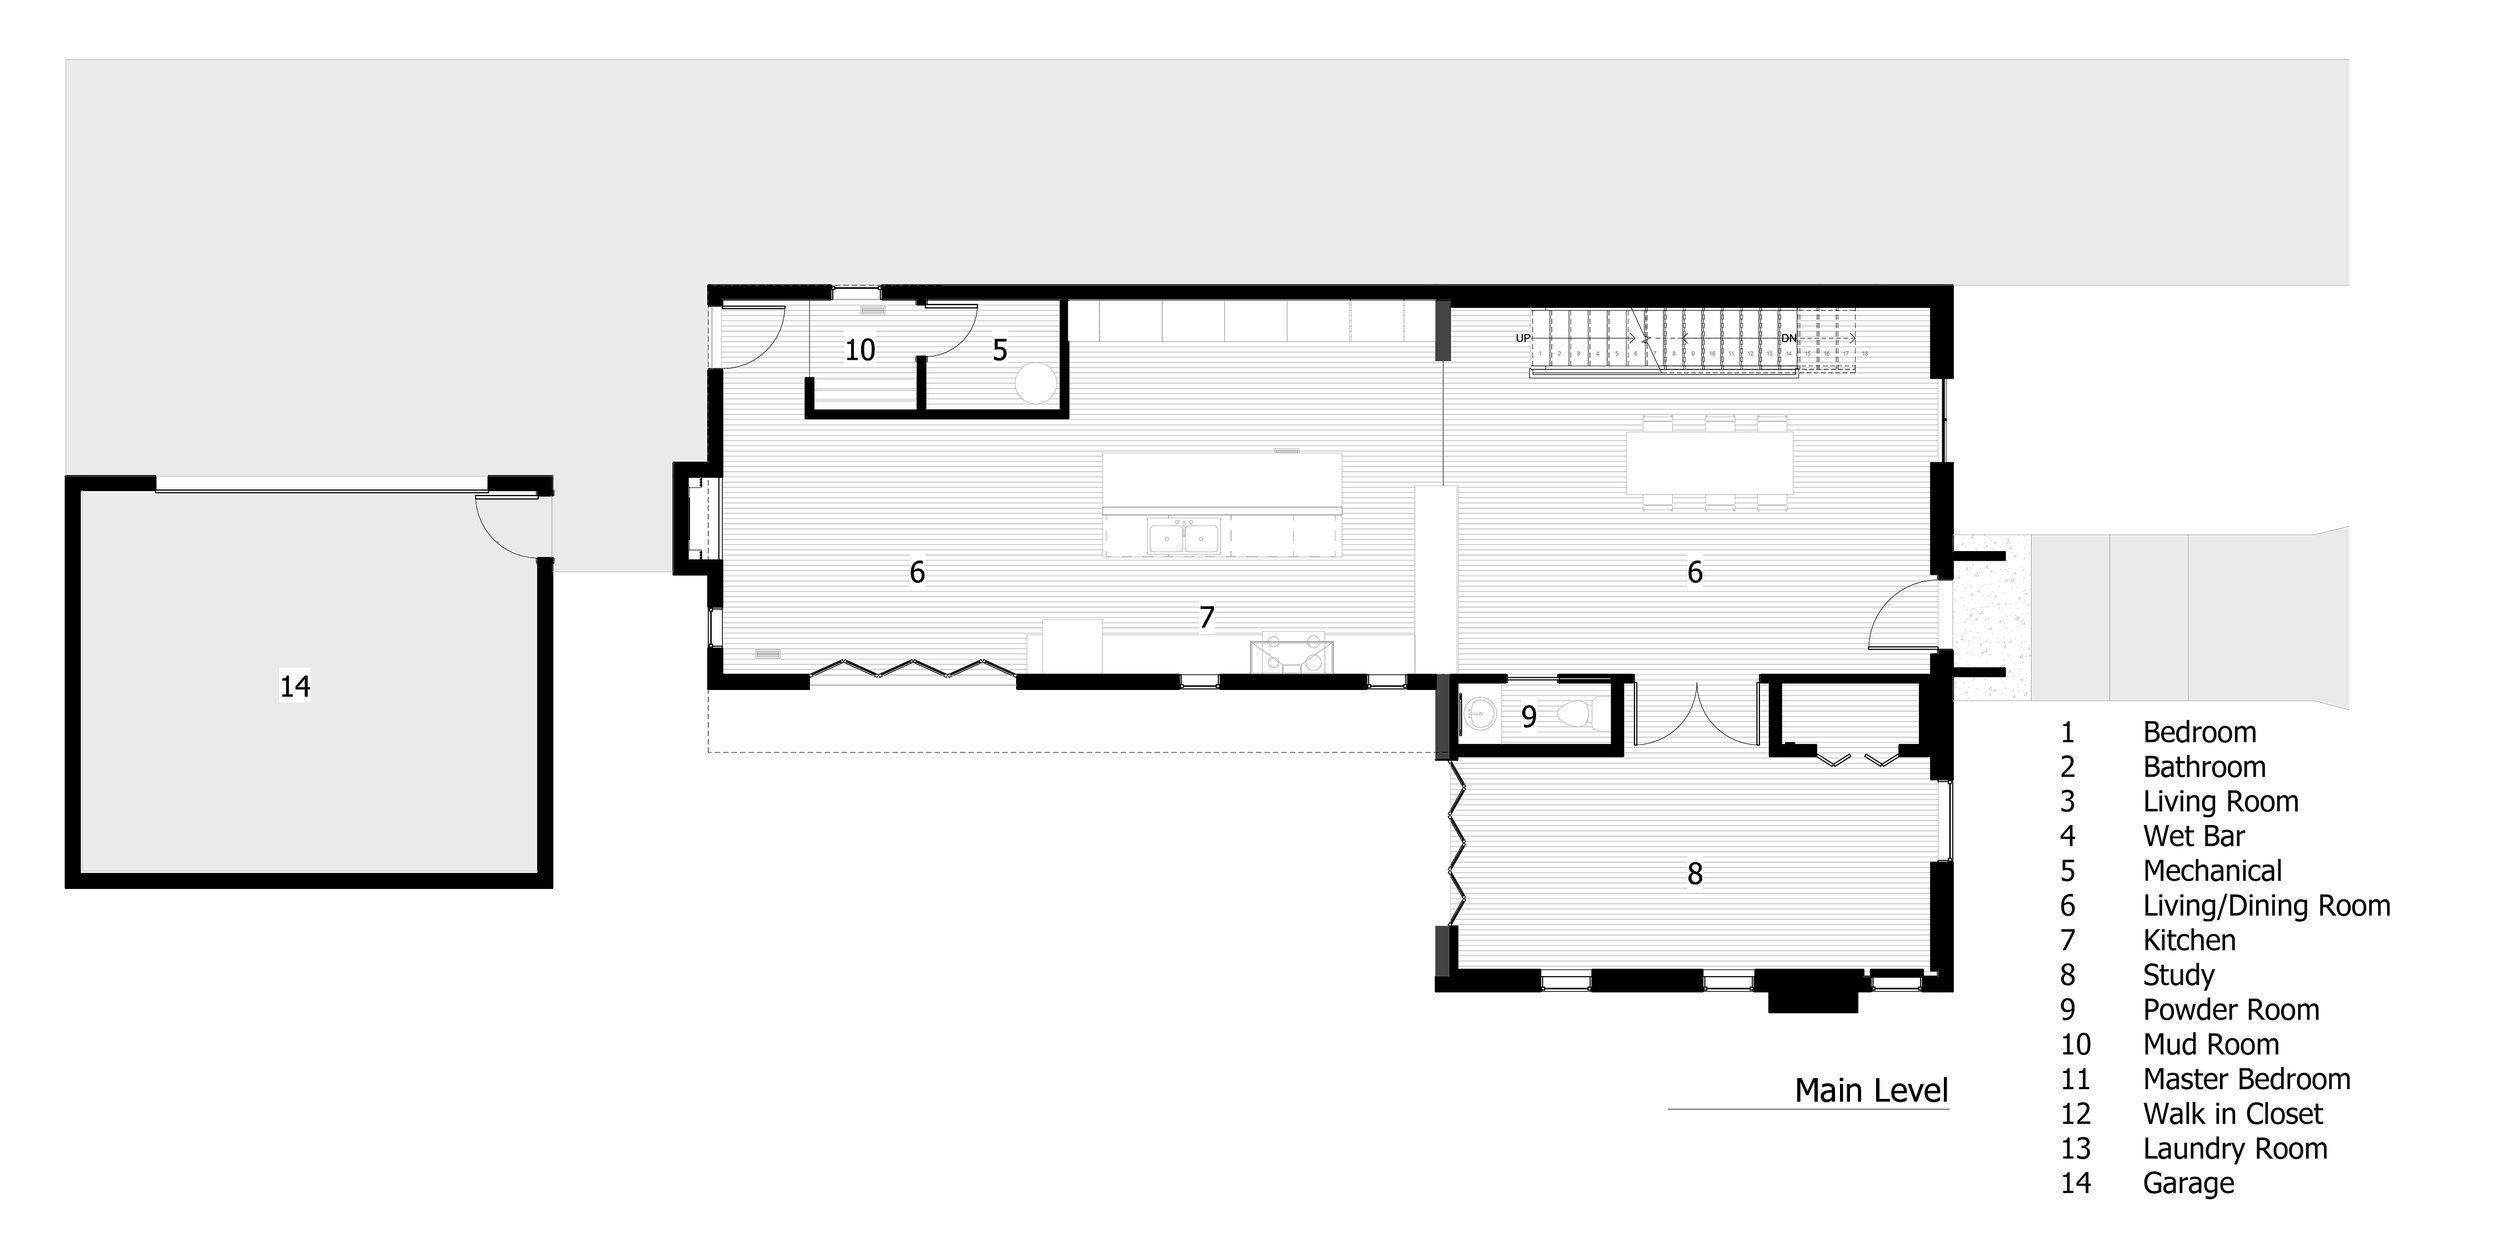 Graphic Plan Main Level FINAL 20181211.jpg